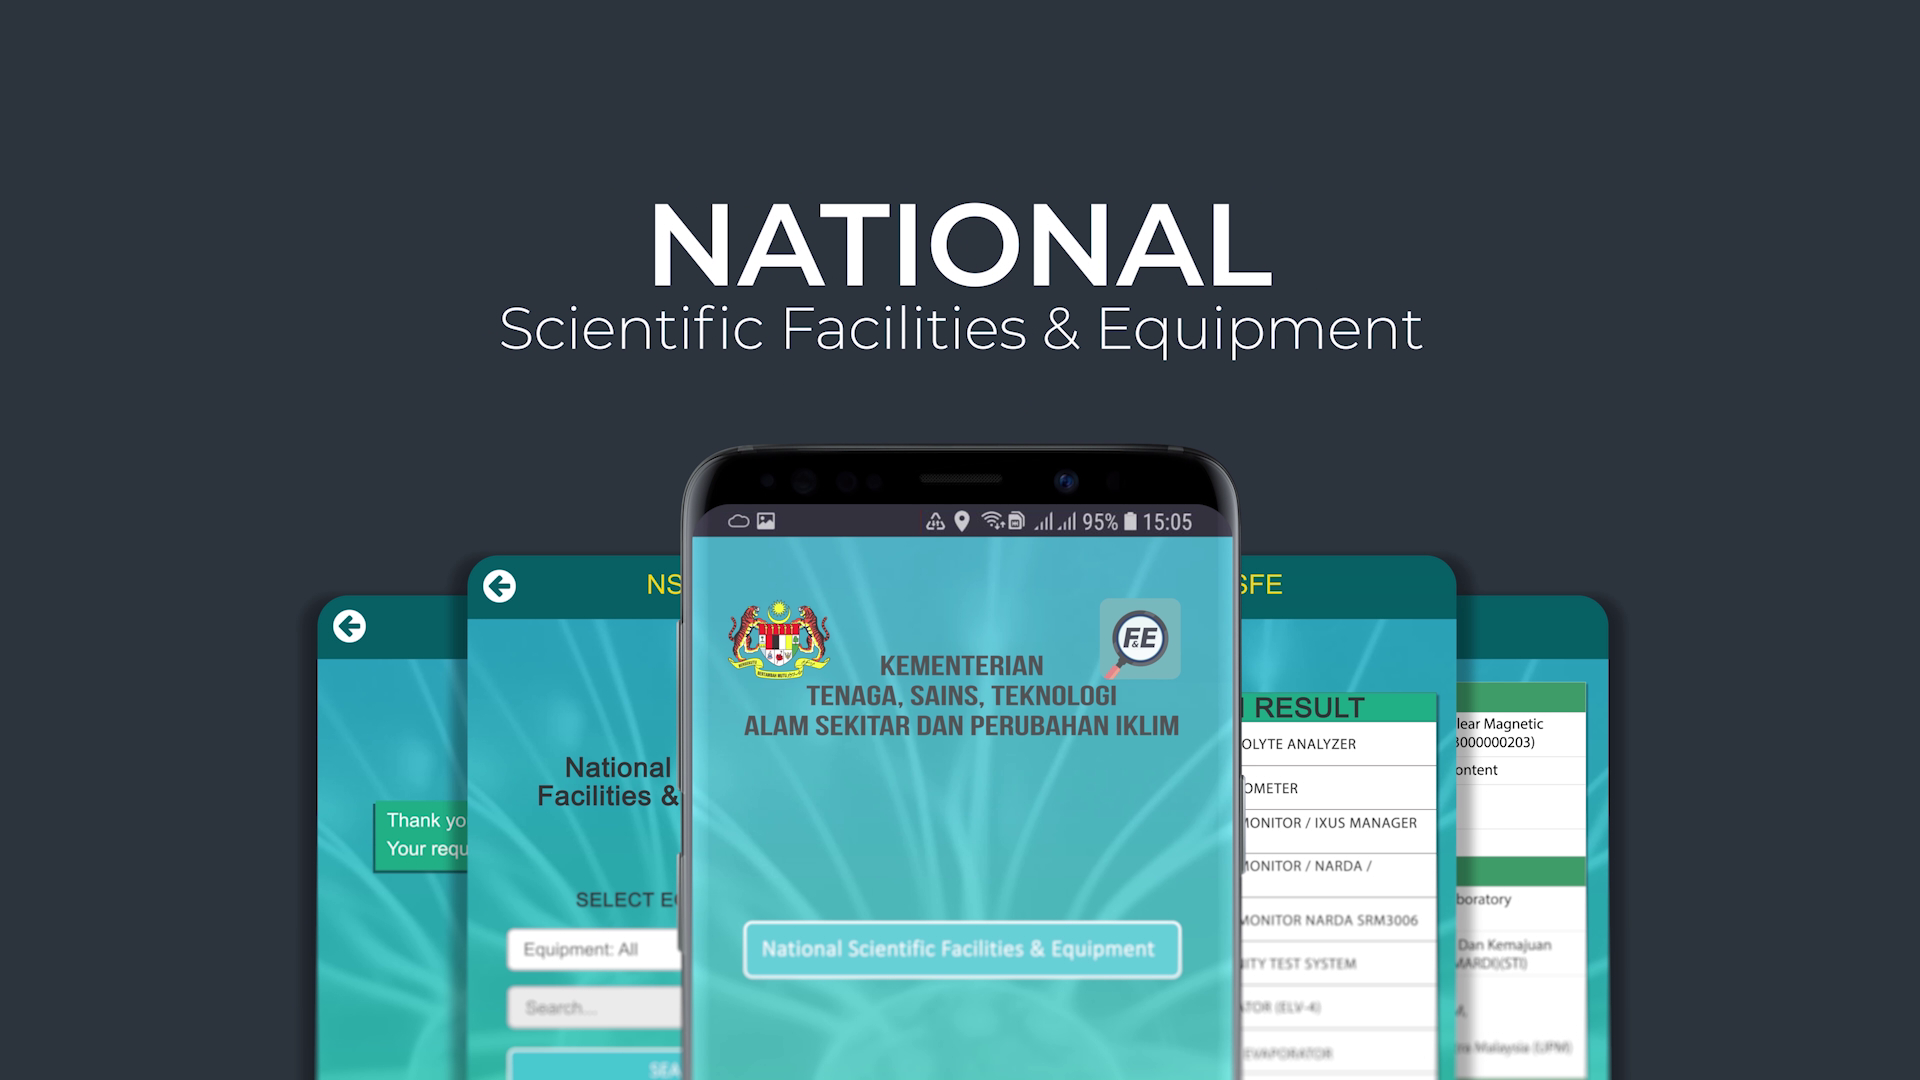 National Scientific Facilities & Equipment (NSFE)